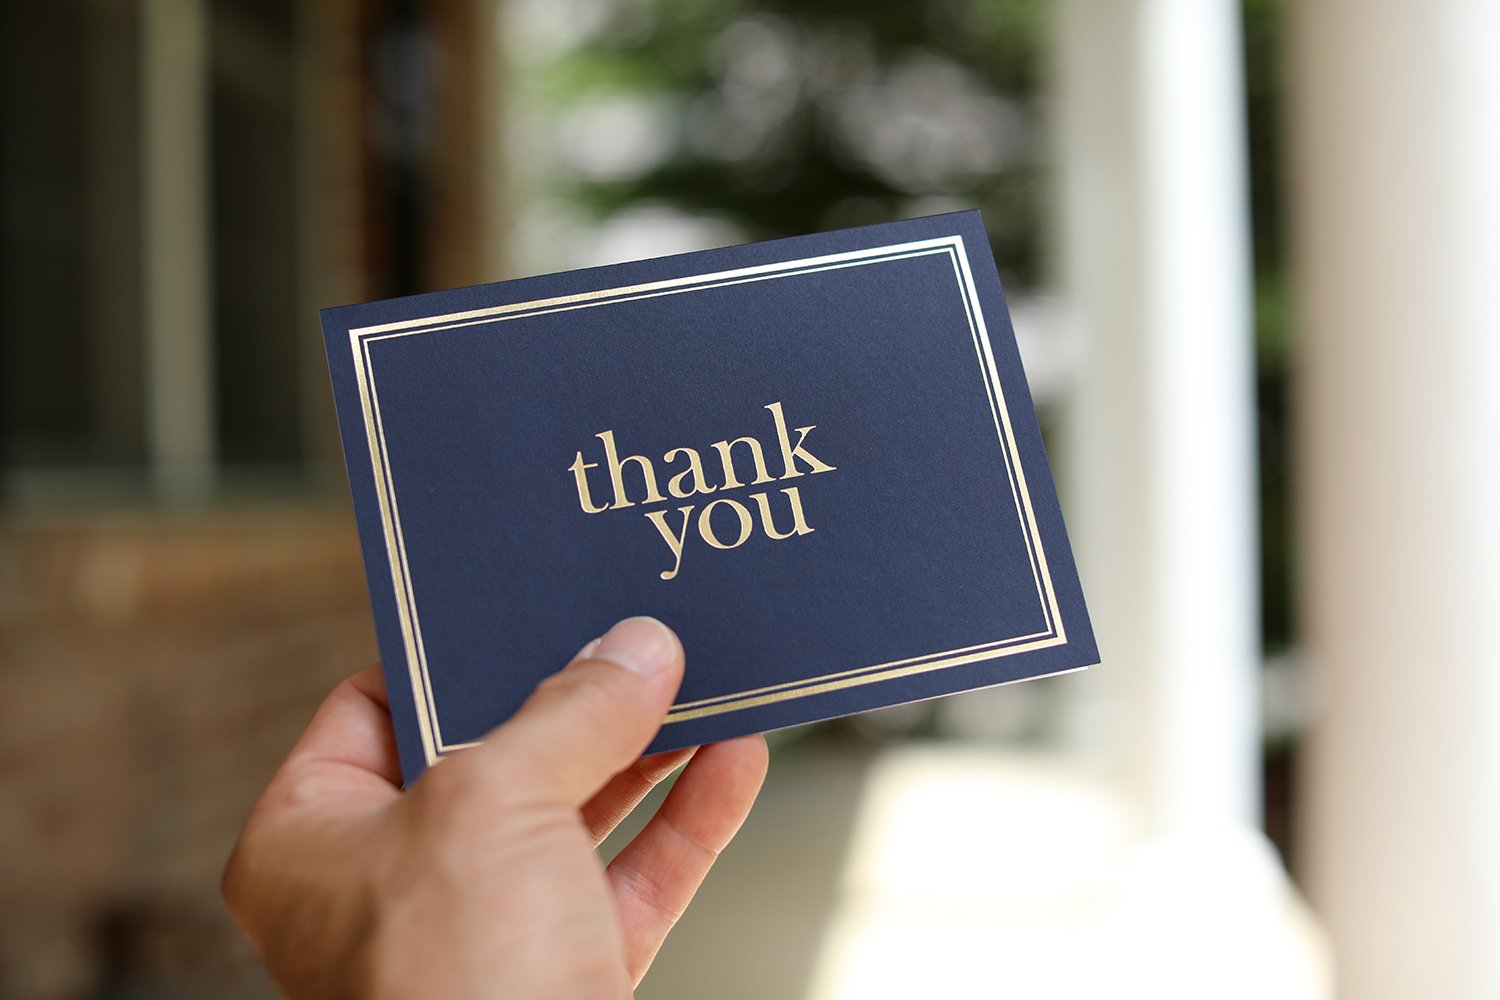 100 Thank You Cards Bulk - Thank You Notes, Navy Blue & Gold - Blank Note Cards with Envelopes - Perfect for Business, Wedding, Gift Cards, Graduation, Baby Shower, Funeral - 4x6 Photo Size by Spark Ink (Image #3)